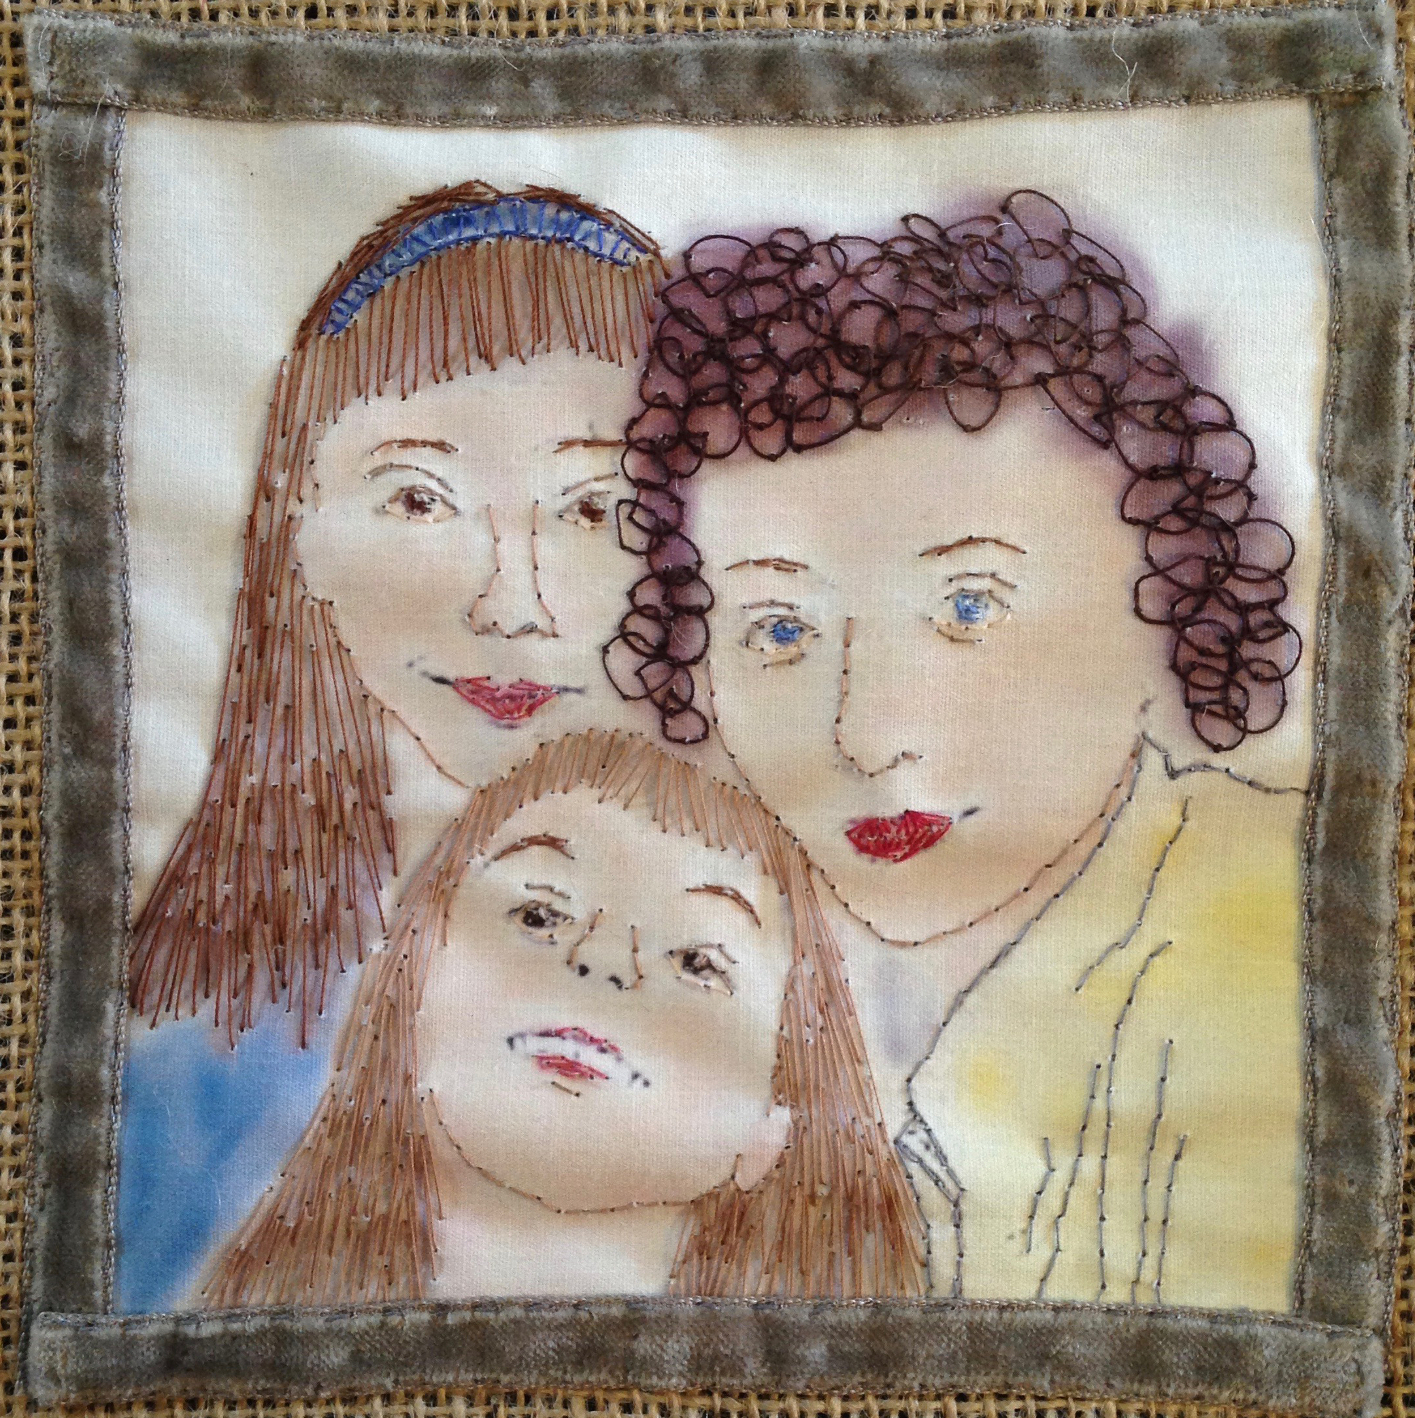 ... and an embroidery I made of it in 2016.